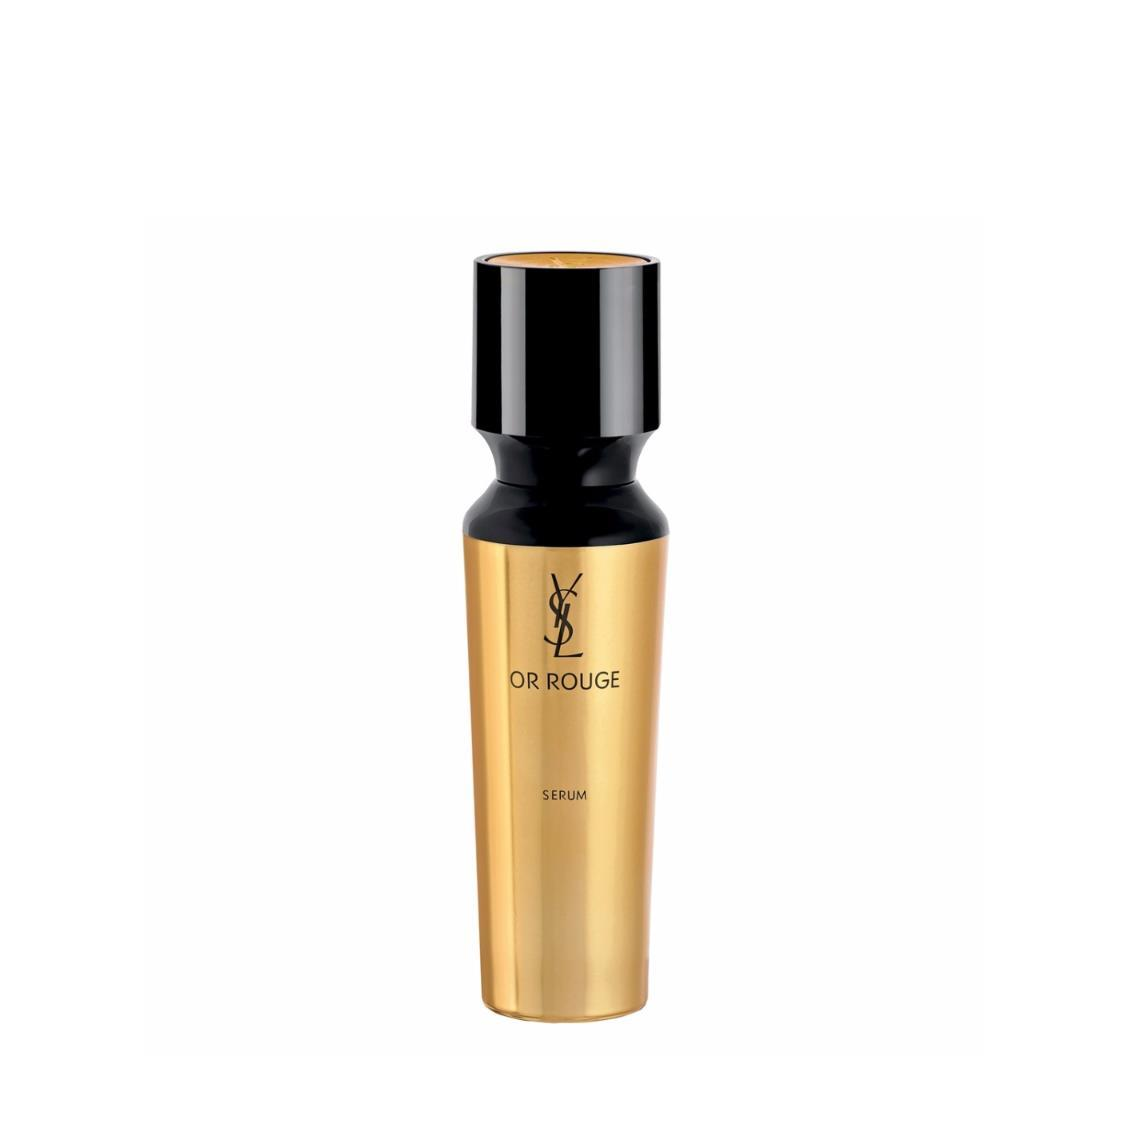 YSL Or Rouge Serum